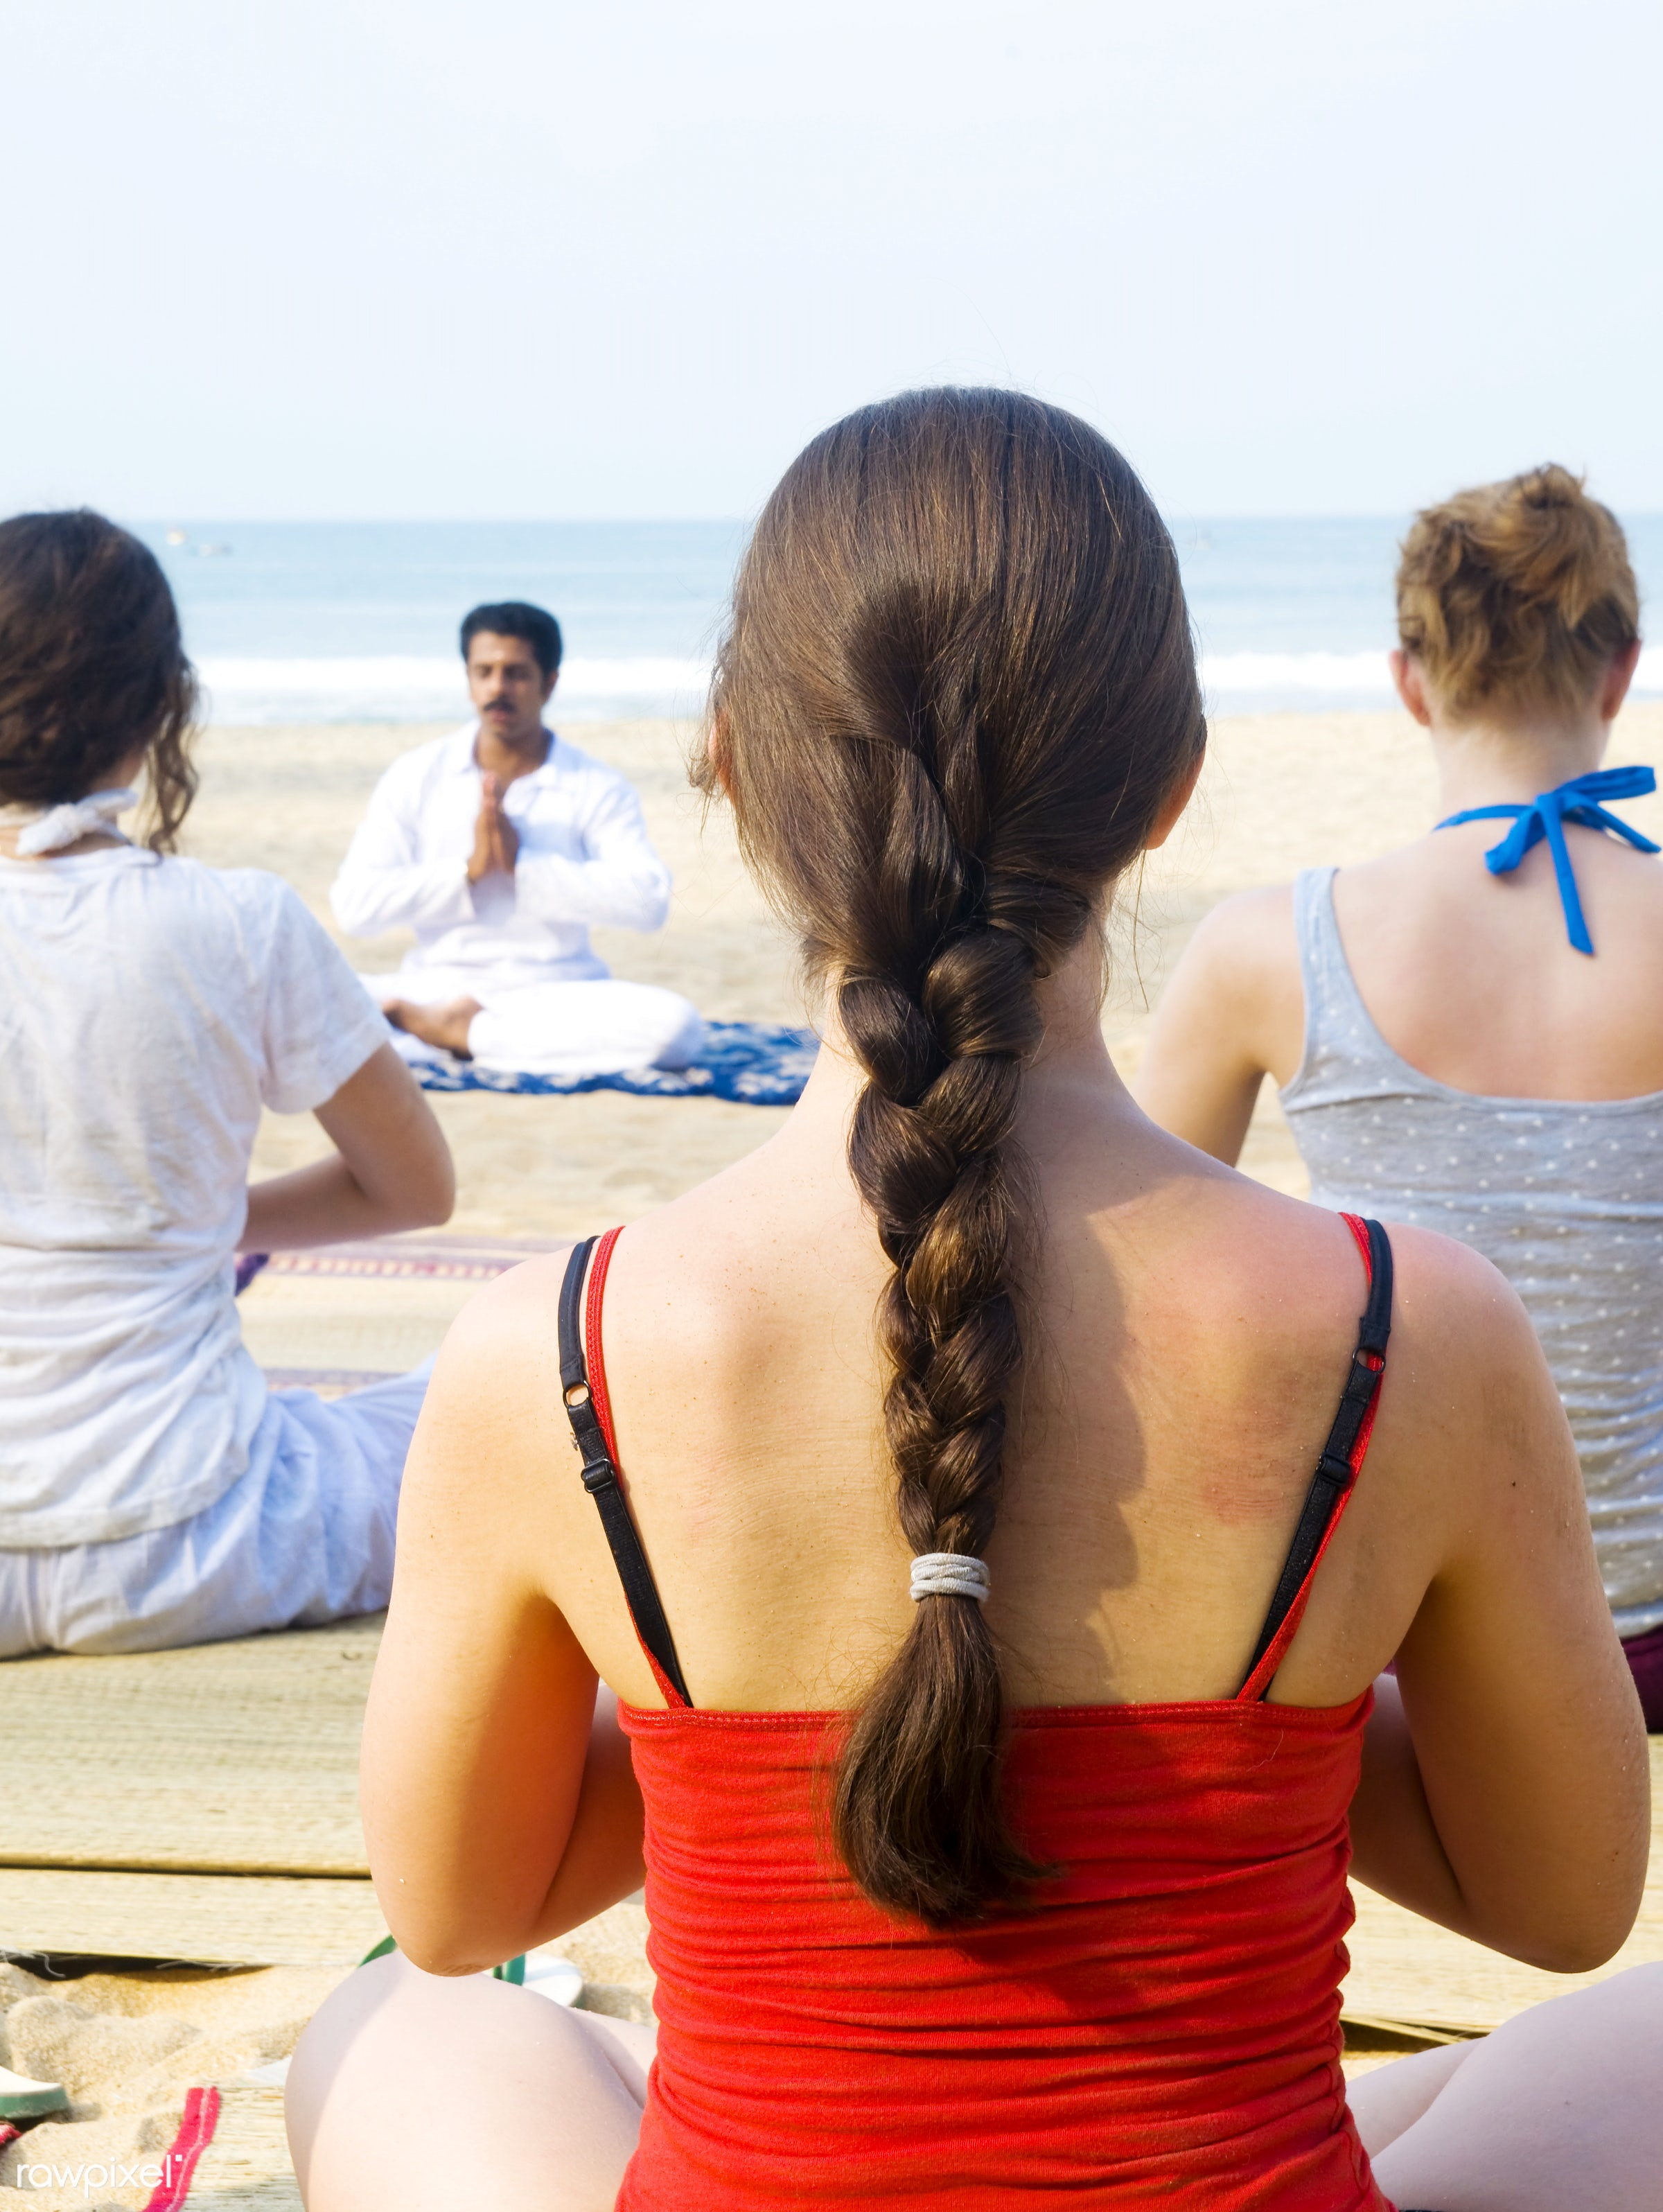 Yoga class on a beach in India - activity, adult, beach, beauty in nature, body, body care, casual, class, coastline,...